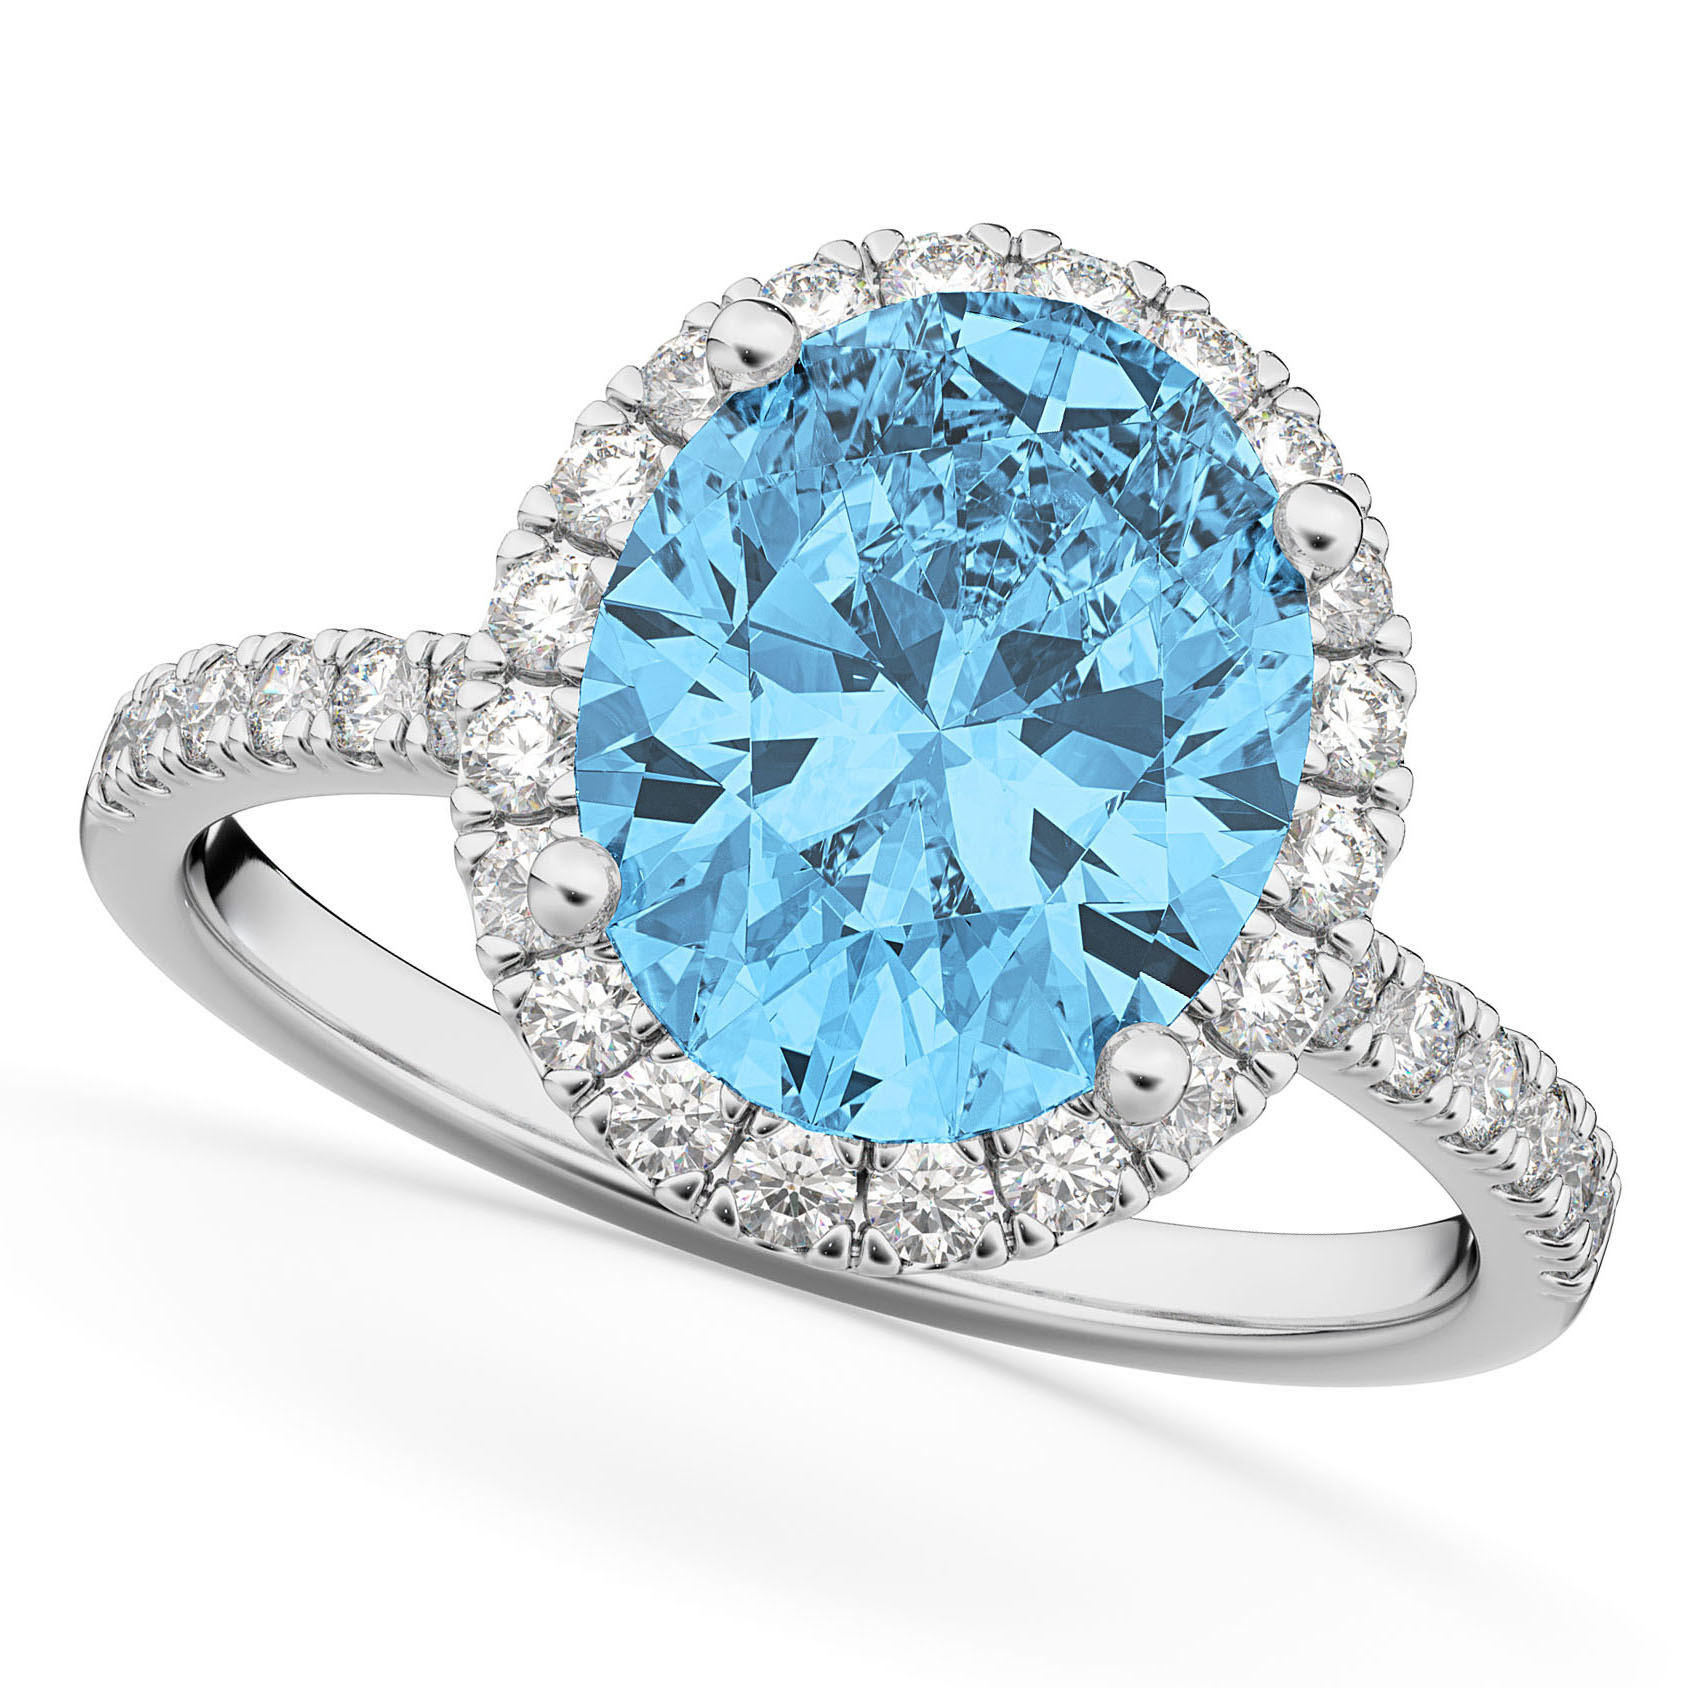 Oval Cut Halo Blue Topaz & Diamond Engagement Ring 14K White Gold 4.01ct